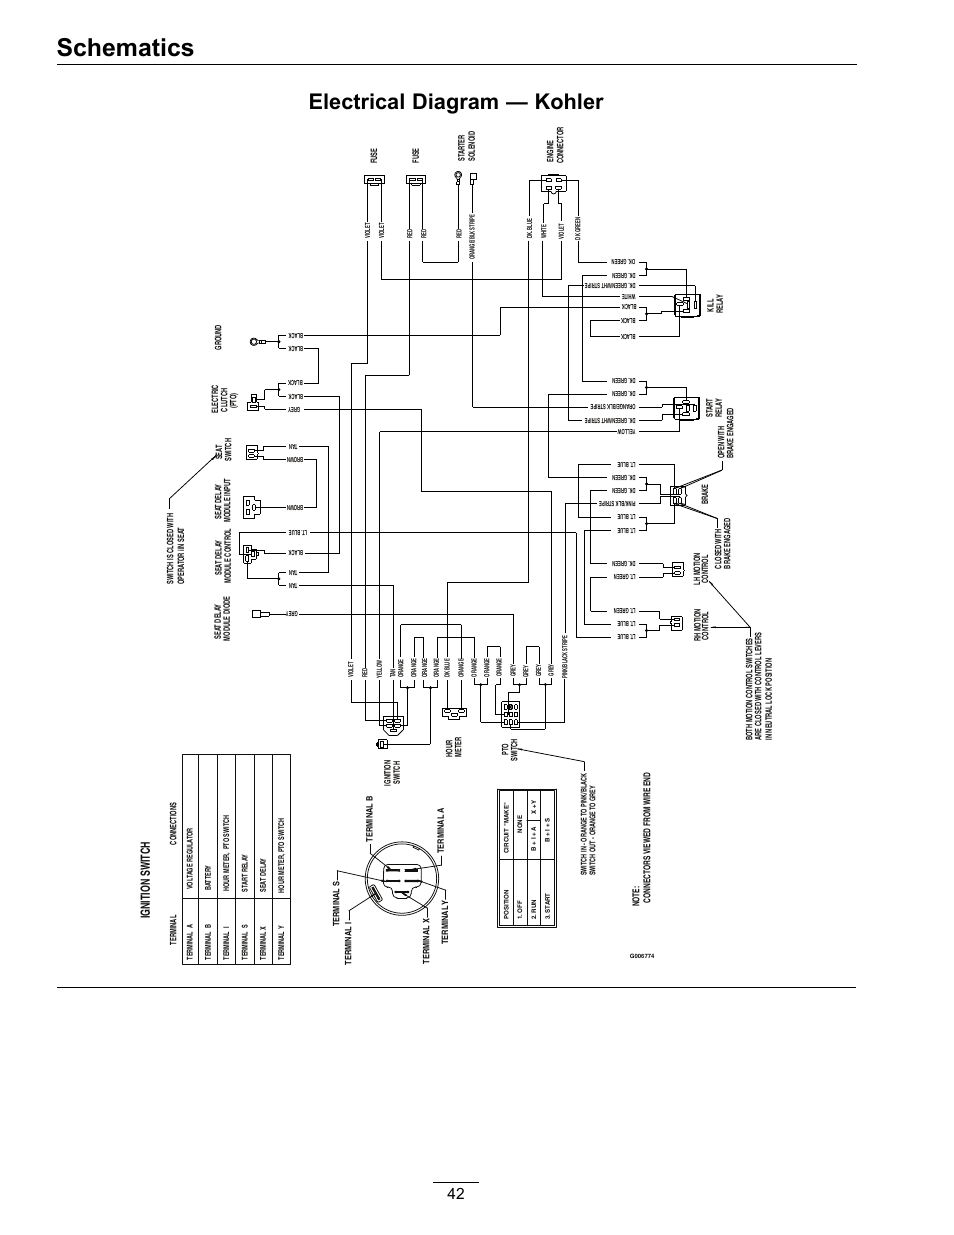 Schematics Electrical Diagram Kohler Ignition Switch Exmark Lazer Z Hp 565 User Manual Page 42 48